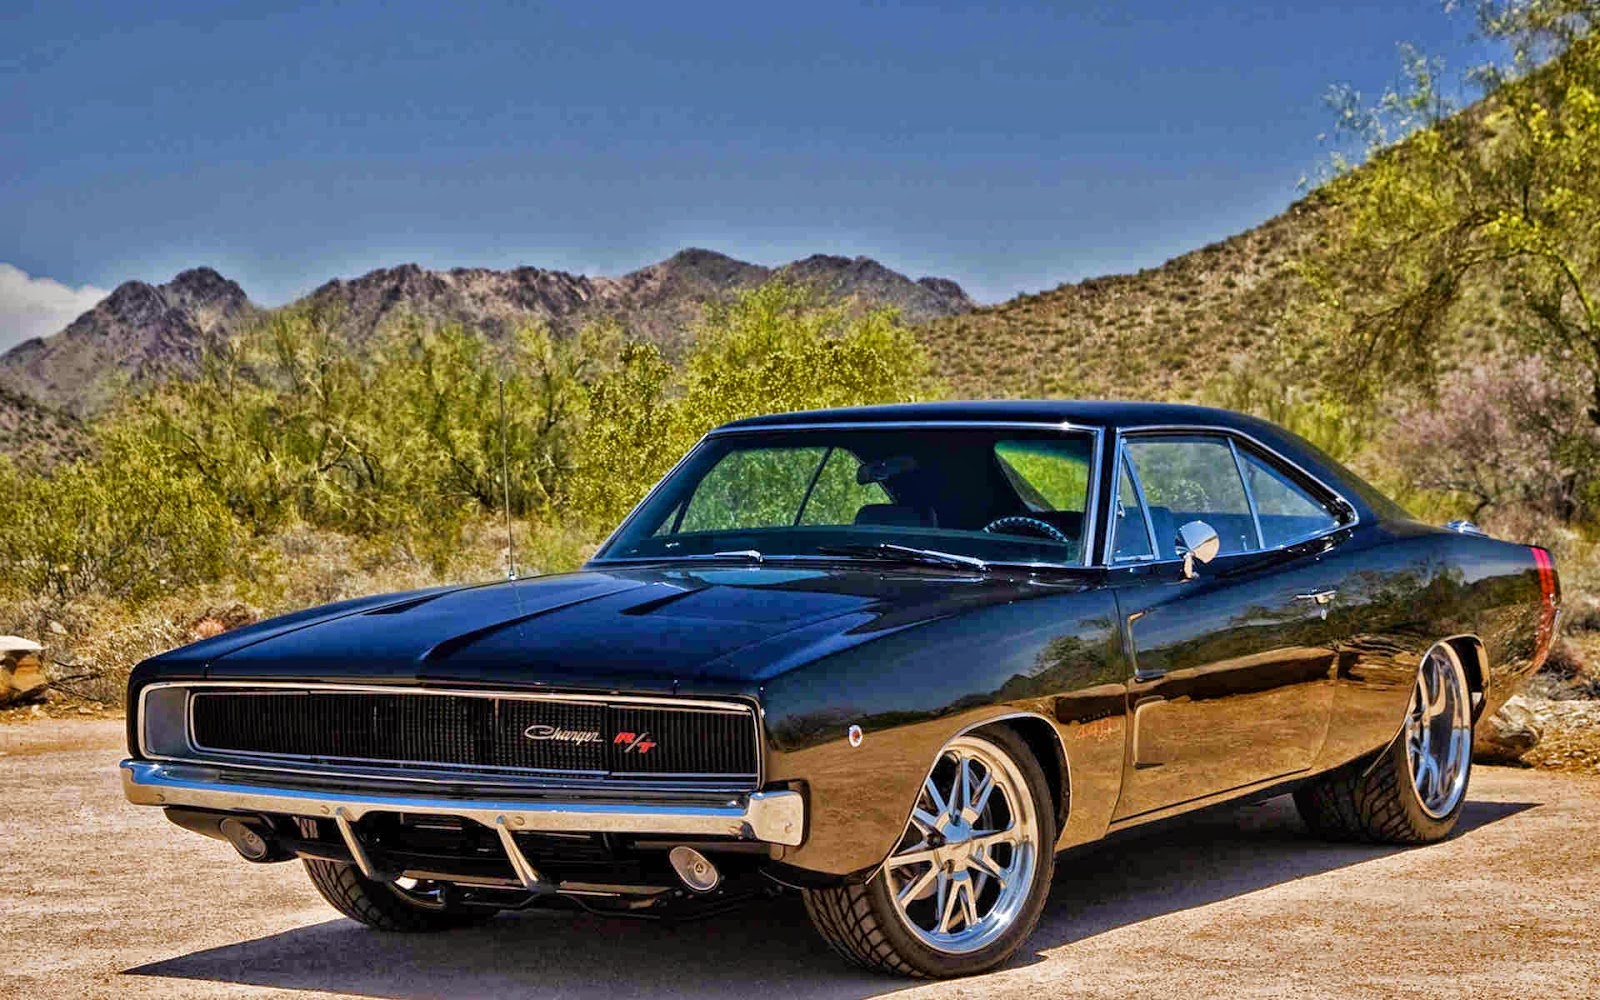 dodge charger fast and furious classic car in movie desktop hd wallpapers sports car. Black Bedroom Furniture Sets. Home Design Ideas